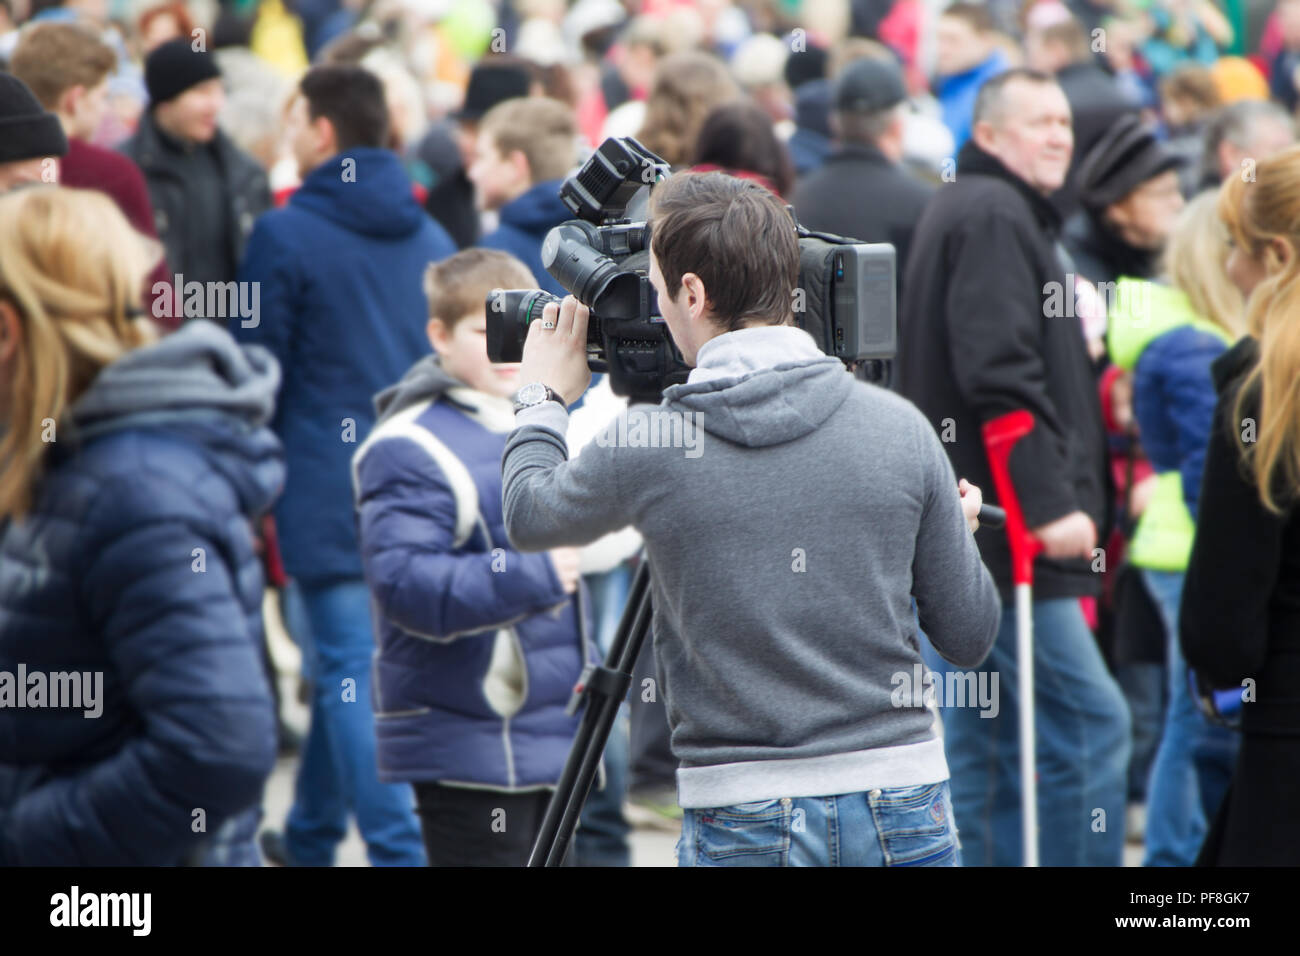 Belarus, Gomel, Central district. The cameraman shoots a crowd of people. News reporter - Stock Image